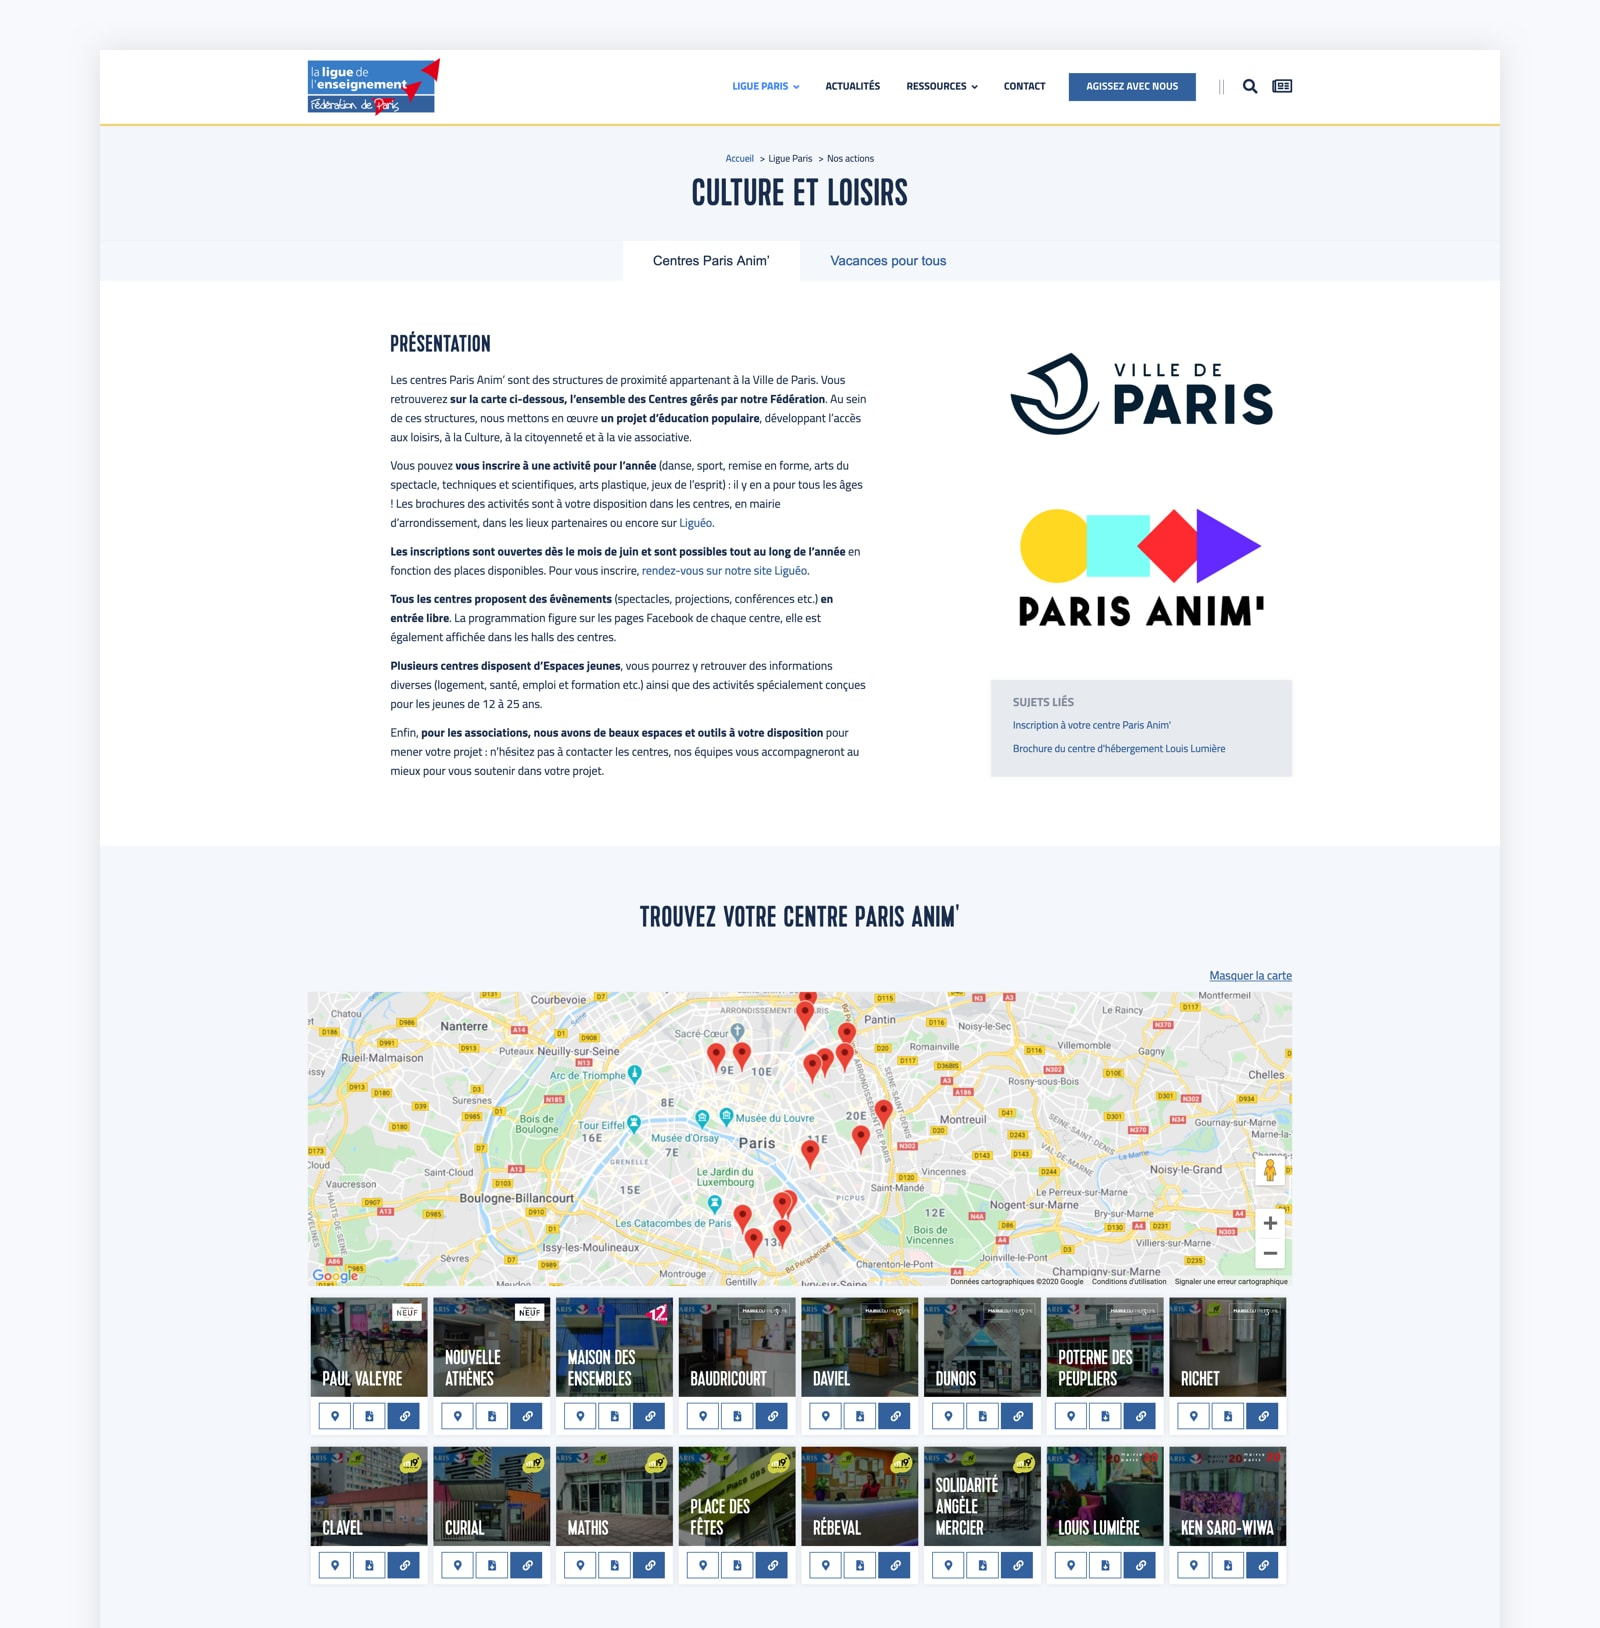 Les centres Paris Anim sur la refonte du site Wordpress de la Ligue Paris